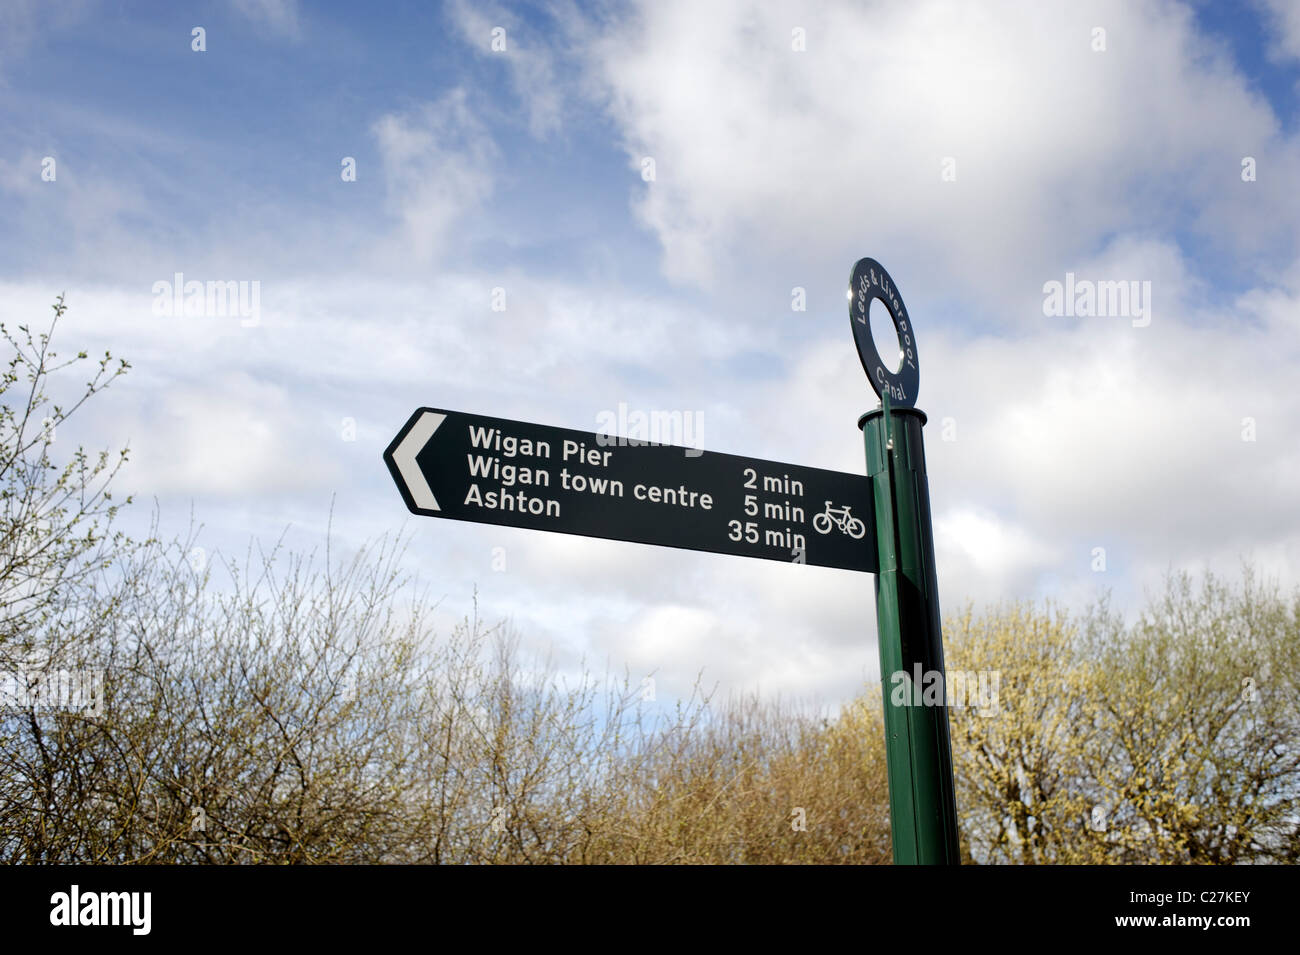 The cycle path to Wigan Pier - signpost in Wigan, Lancashire, England - Stock Image